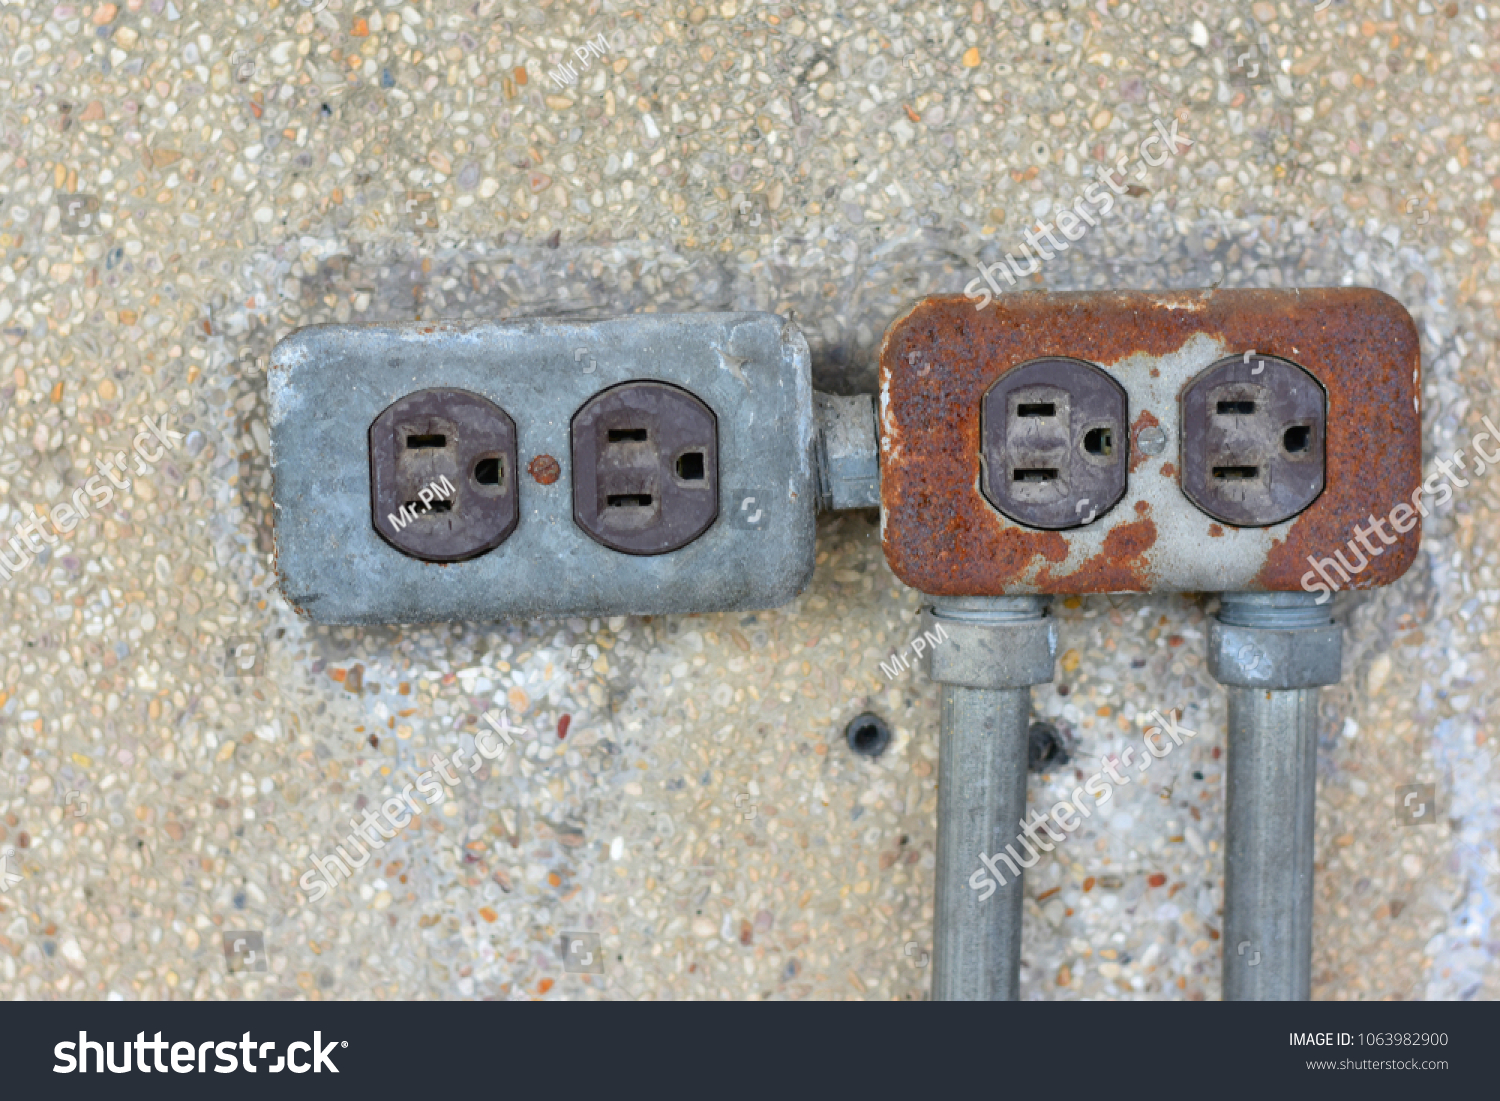 Rustic Metal Electrical Outlet Electrical Wiring Stock Photo ... on outlet covers, outlet amperage, outlet faceplate, outlet pinout, outlet electrical, outlet voltage, outlet fuse, outlet panel, outlet works, outlet centers california, outlet box, outlet circuit, outlet installation, outlet store, outlet fixtures, outlet enclosure, outlet plugs, outlet tester, outlet connections, outlet wire,